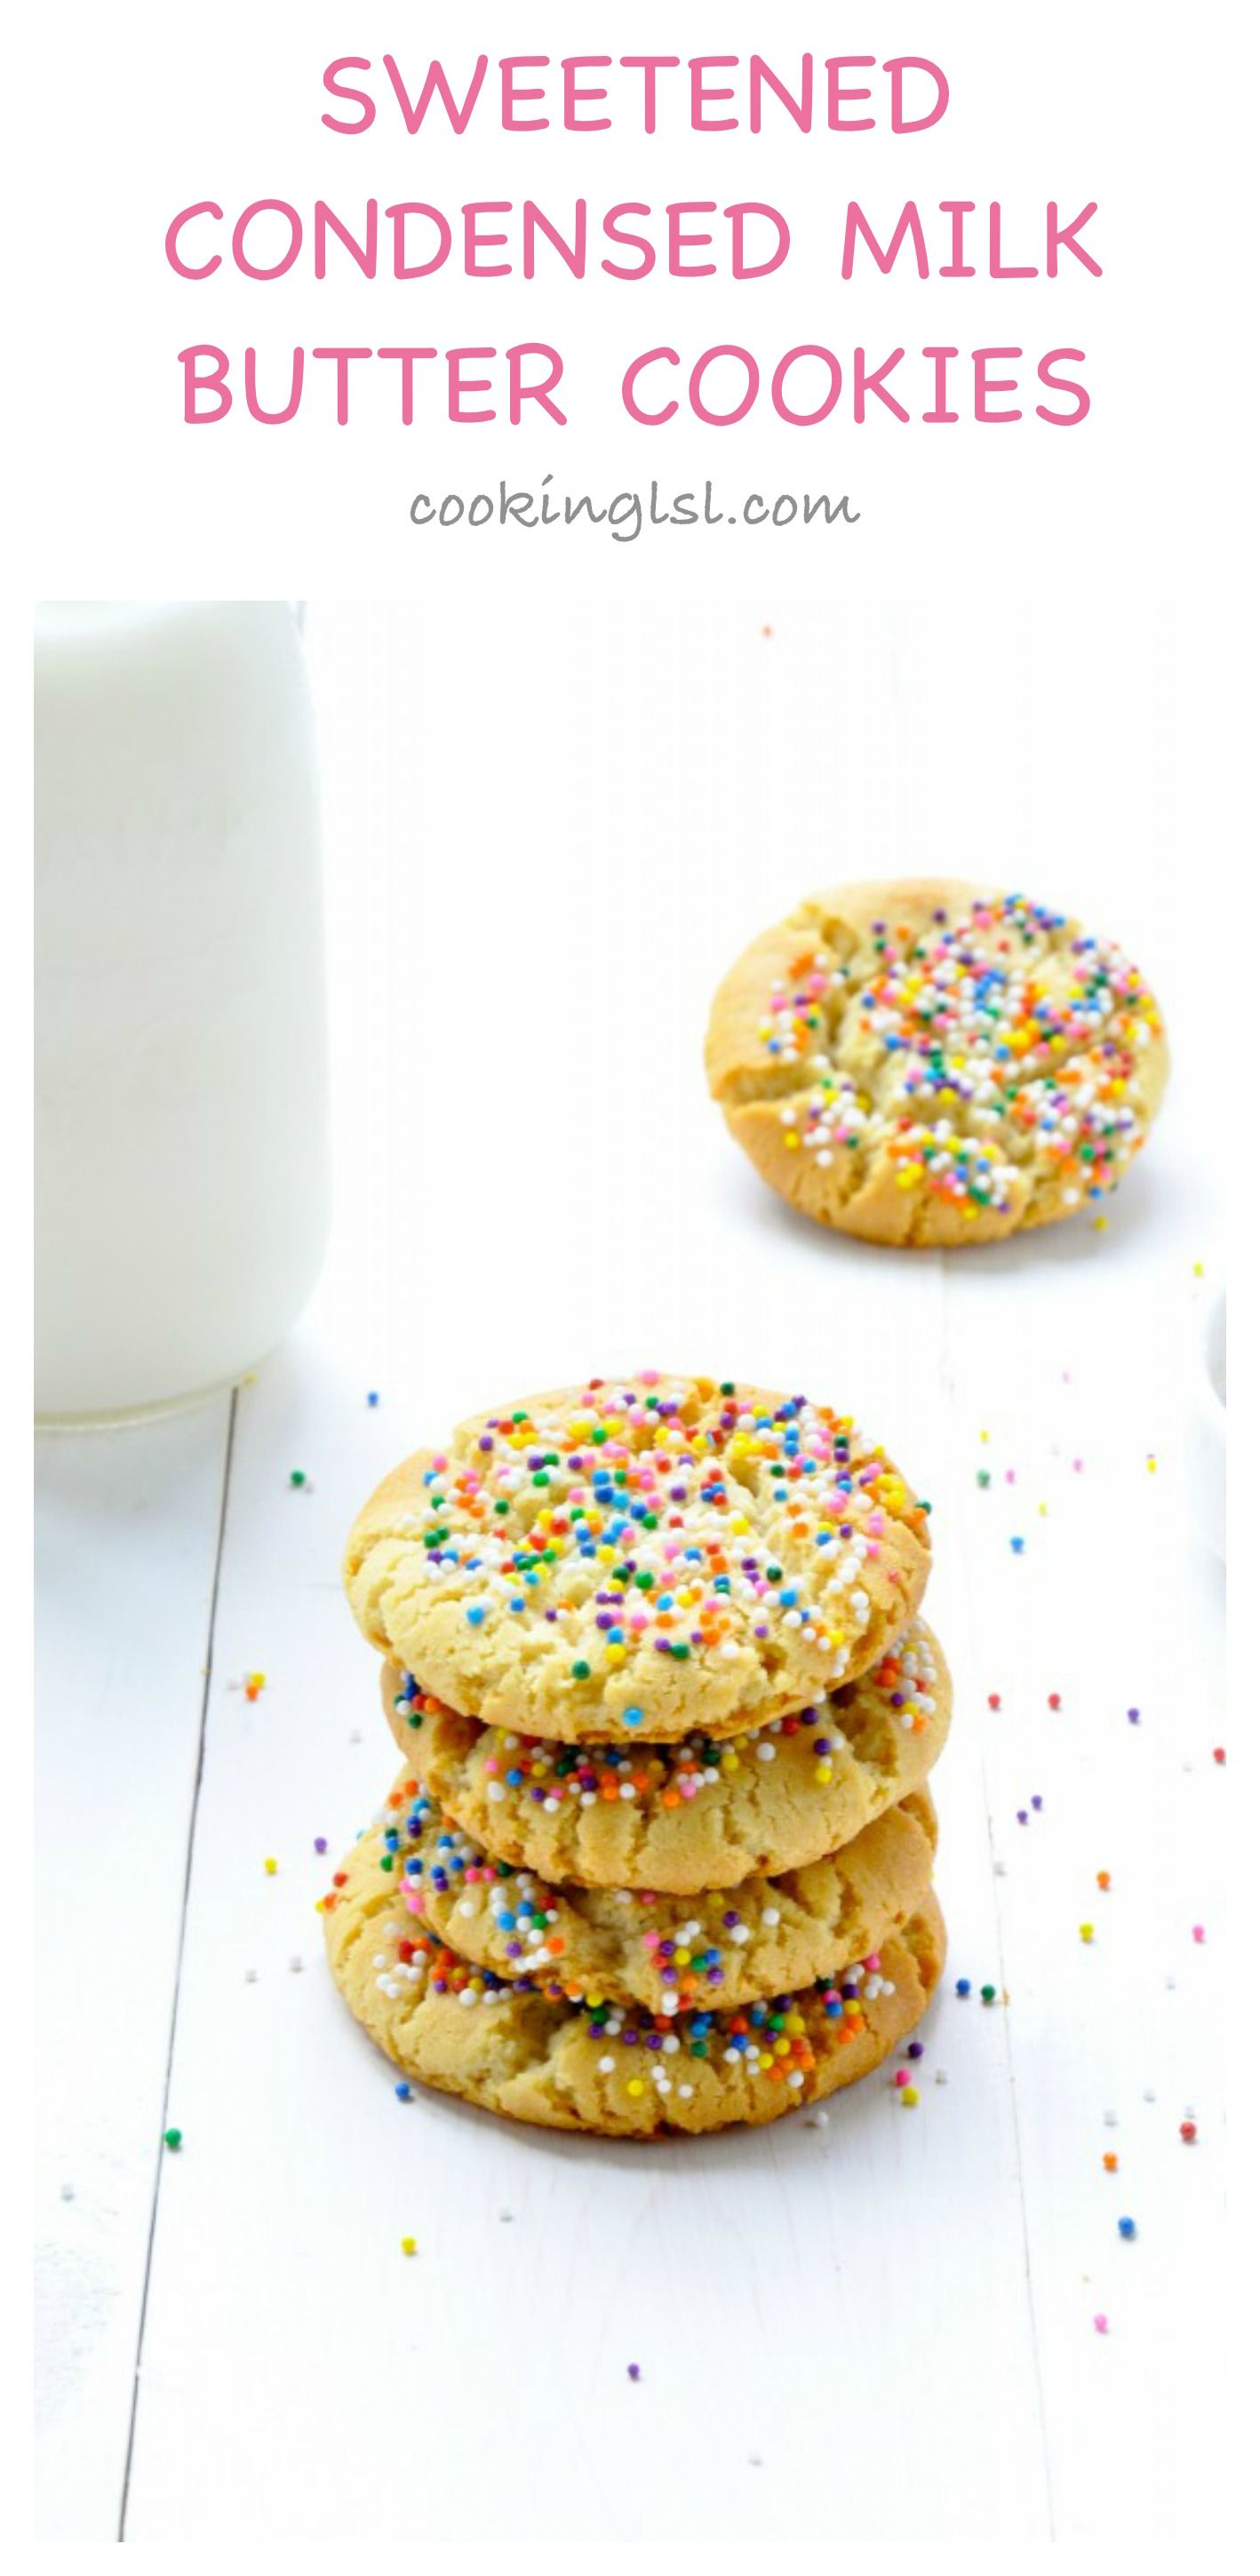 Sweetened Condensed Milk Three Ingredient Butter Cookies Recipe Sweetened Condensed Milk Recipes Condensed Milk Cookies Cookie Recipes